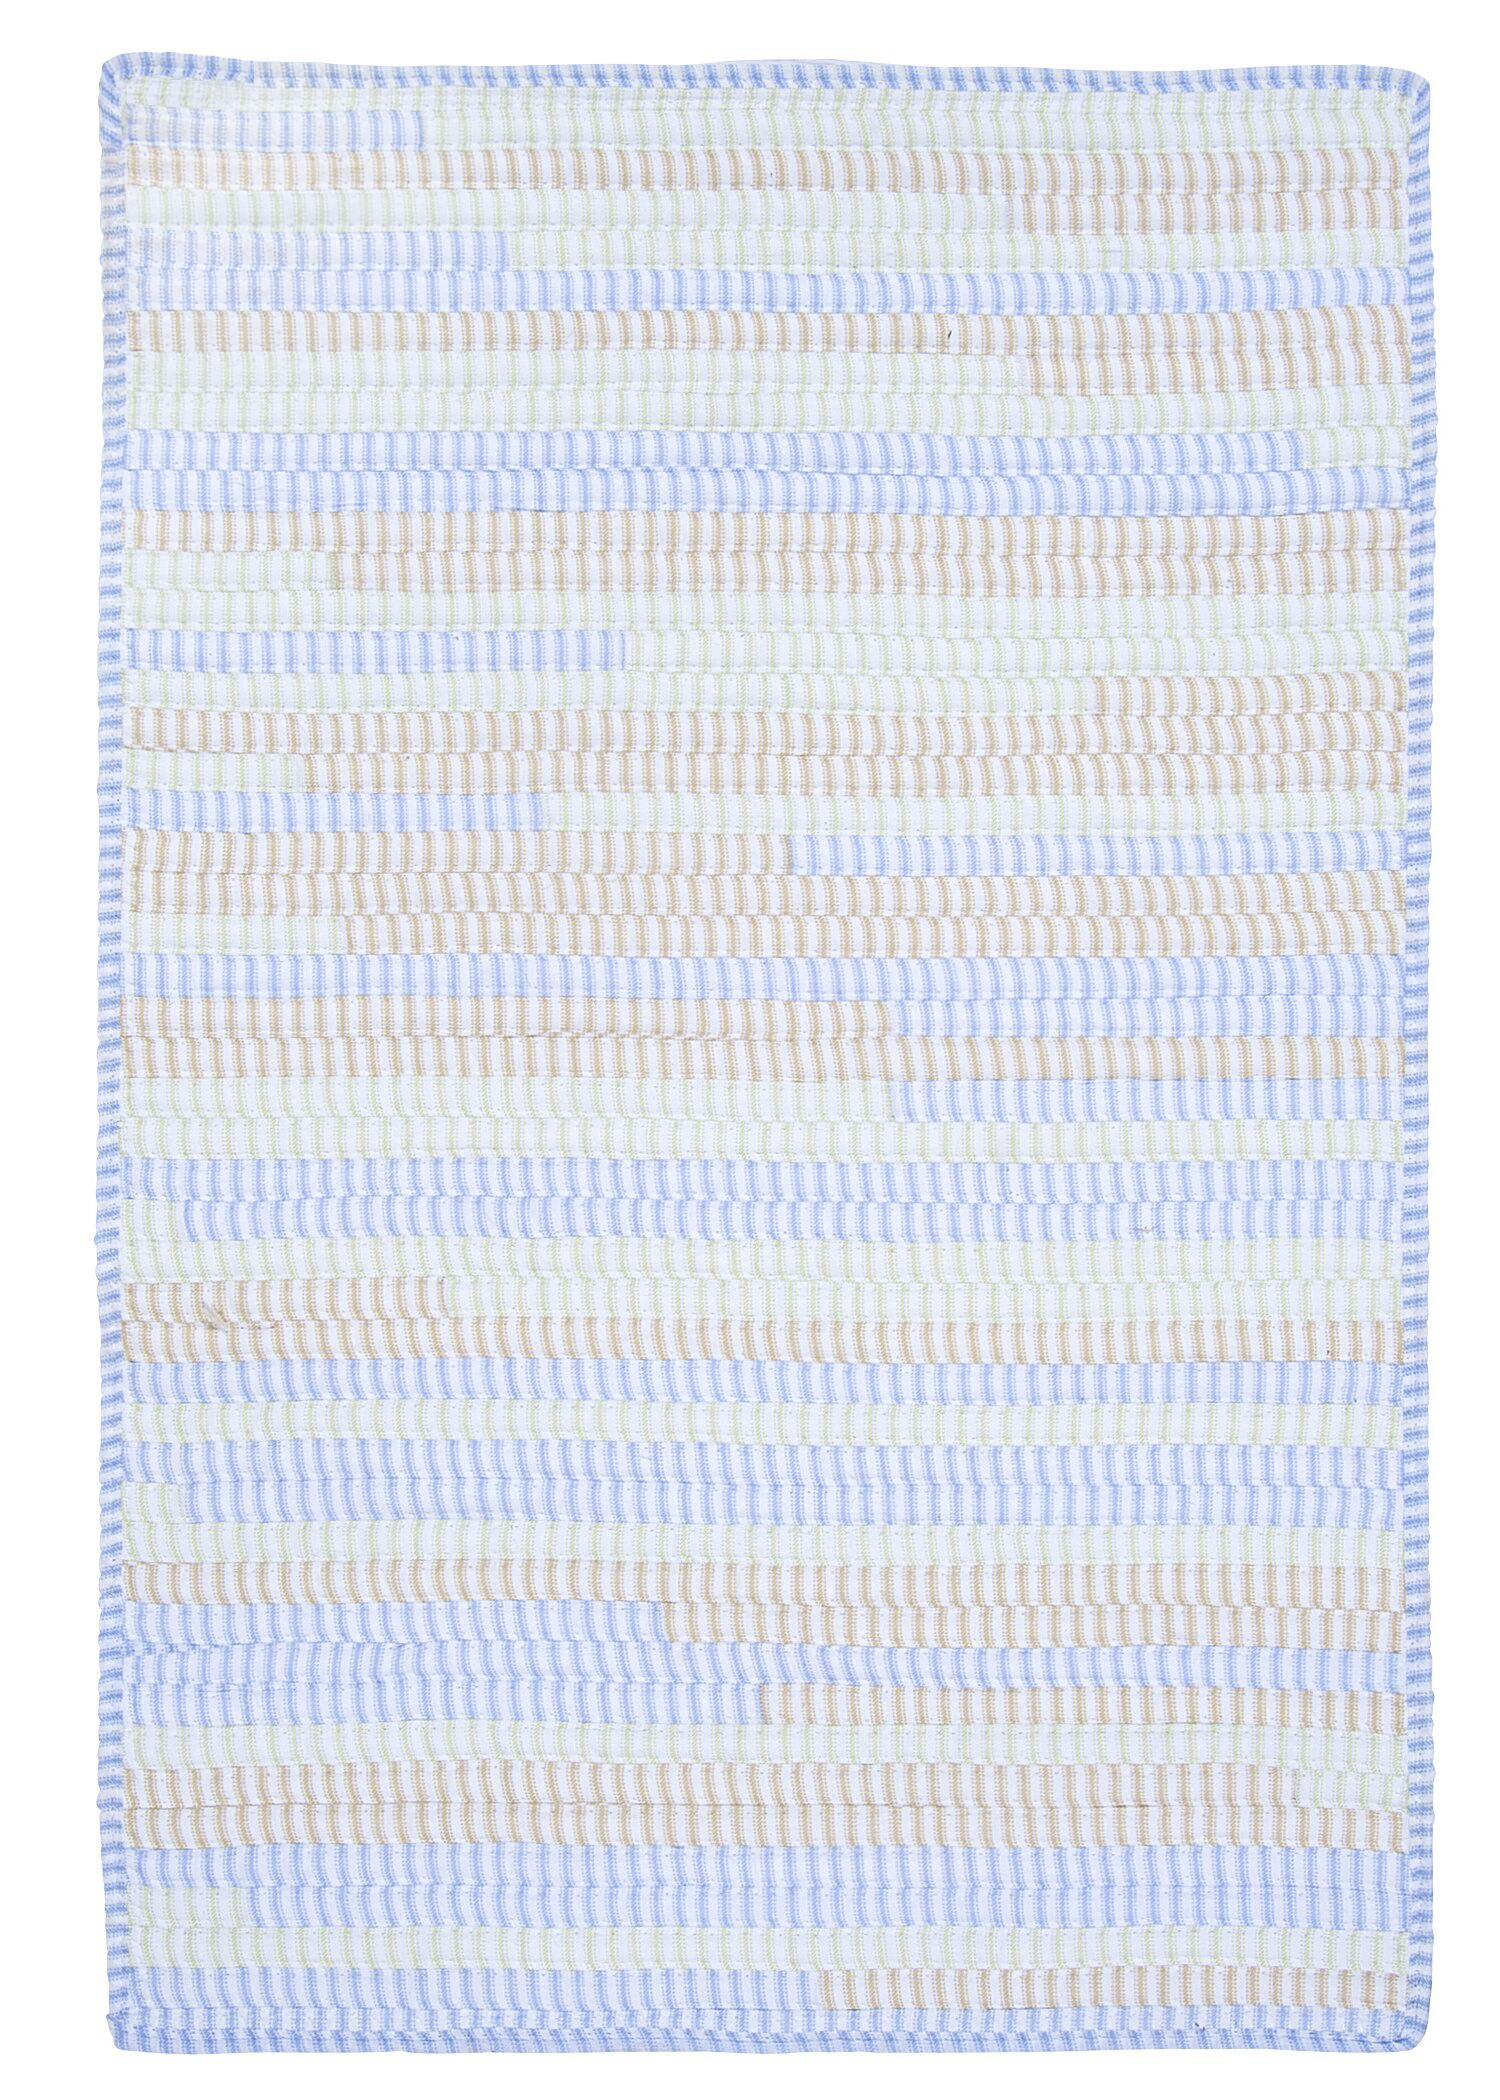 Ticking Stripe Rect Starlight Area Rug Rug Size: Runner 2' x 12'